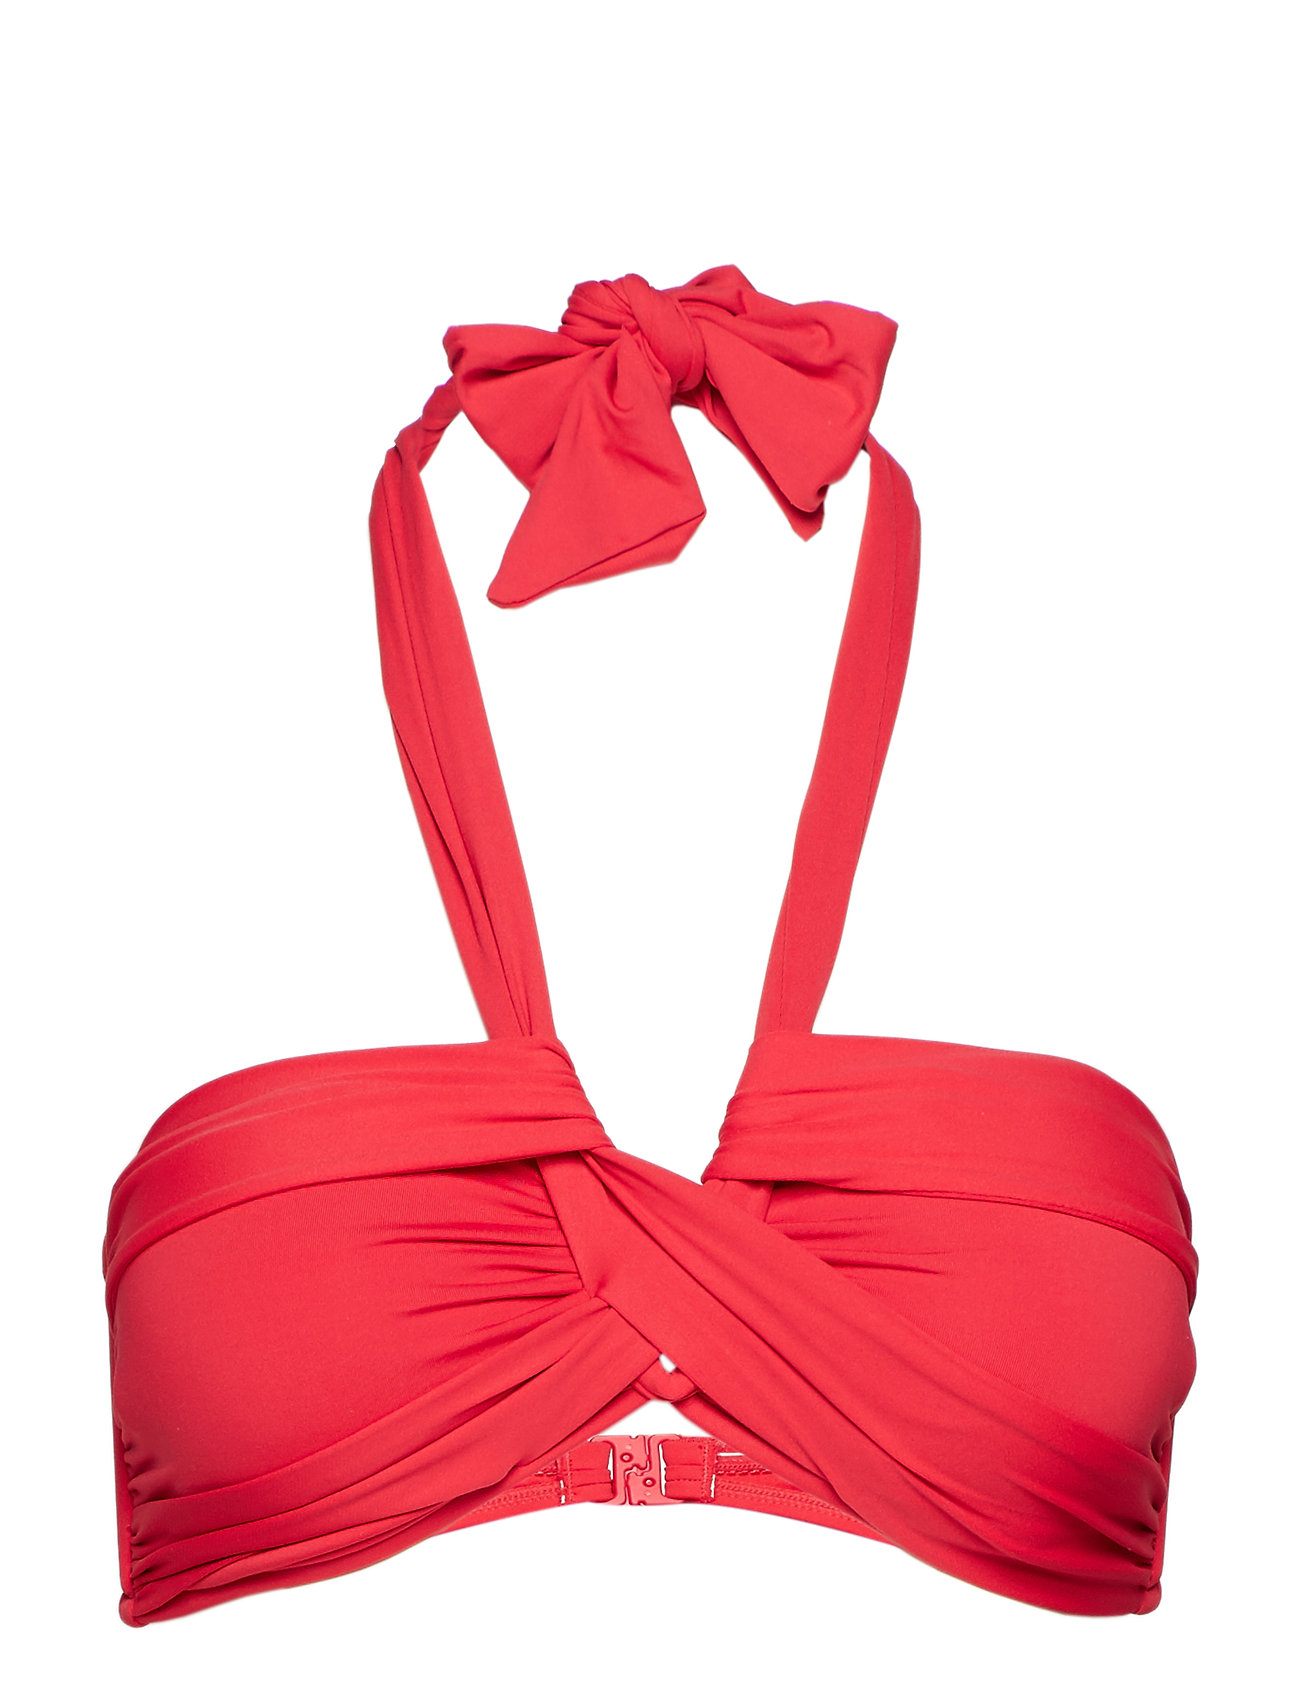 Seafolly Seafolly Bandeau - CHILLI